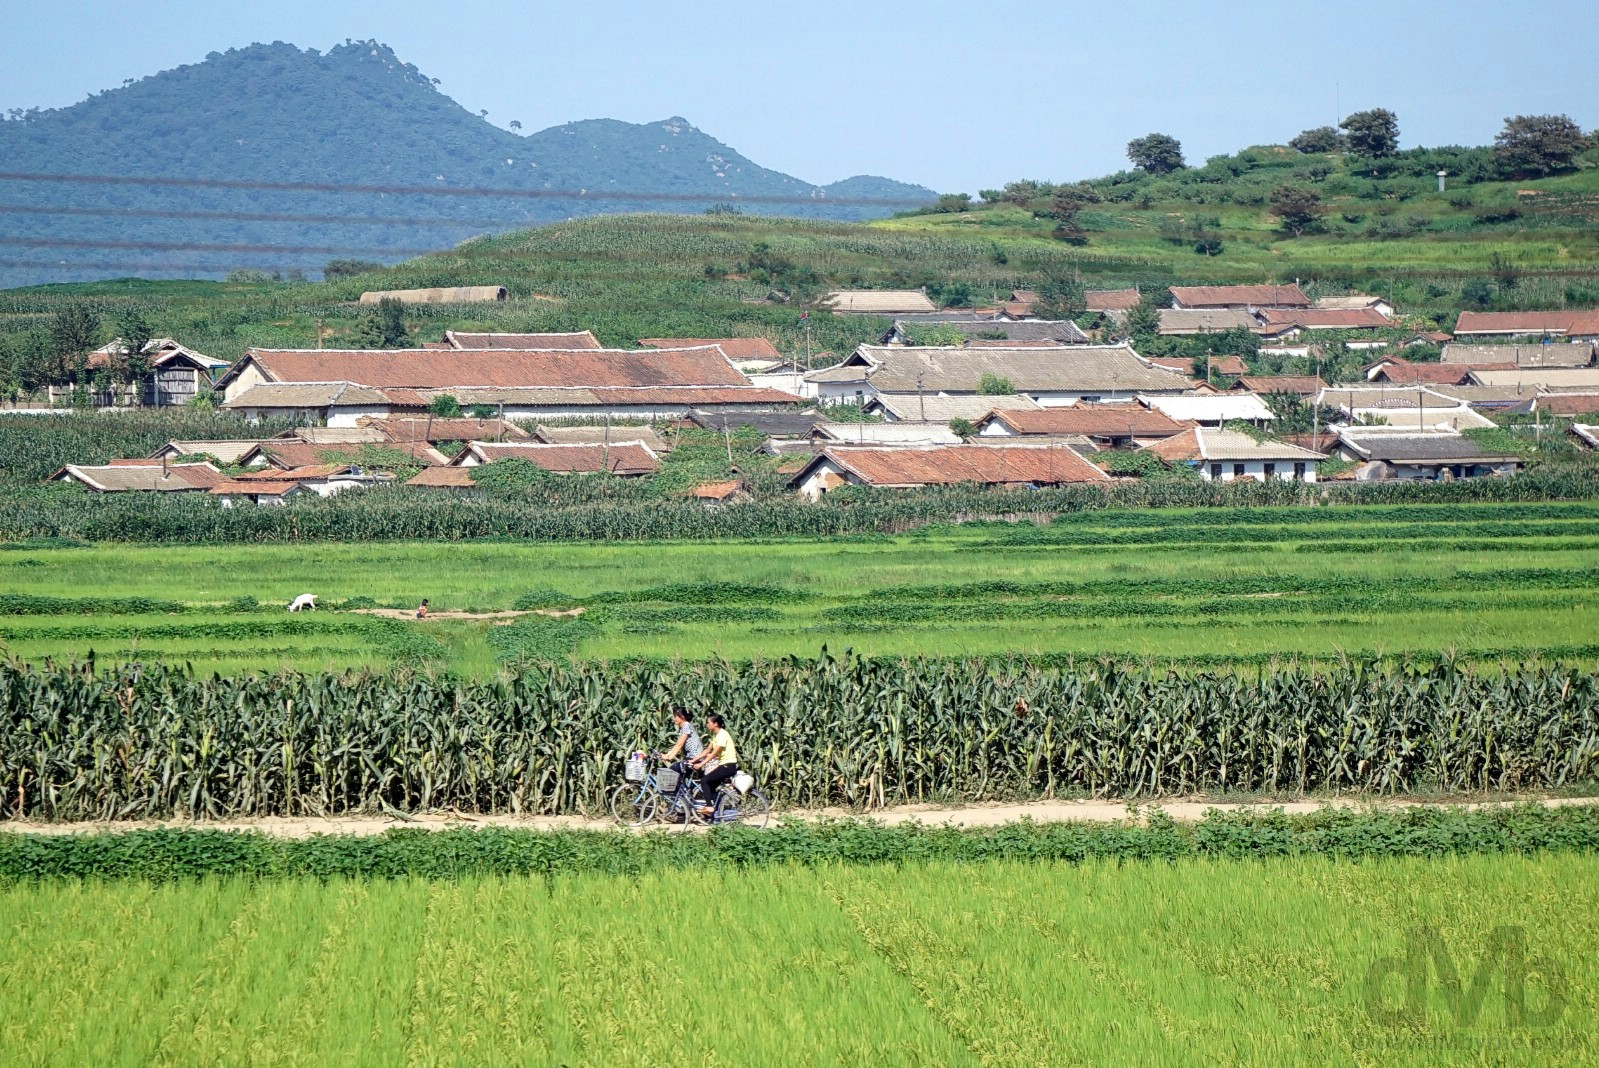 The North Korean countryside as seen from the daily 95 train from Dandong, China to Pyongyang, North Korea. August 14, 2017.